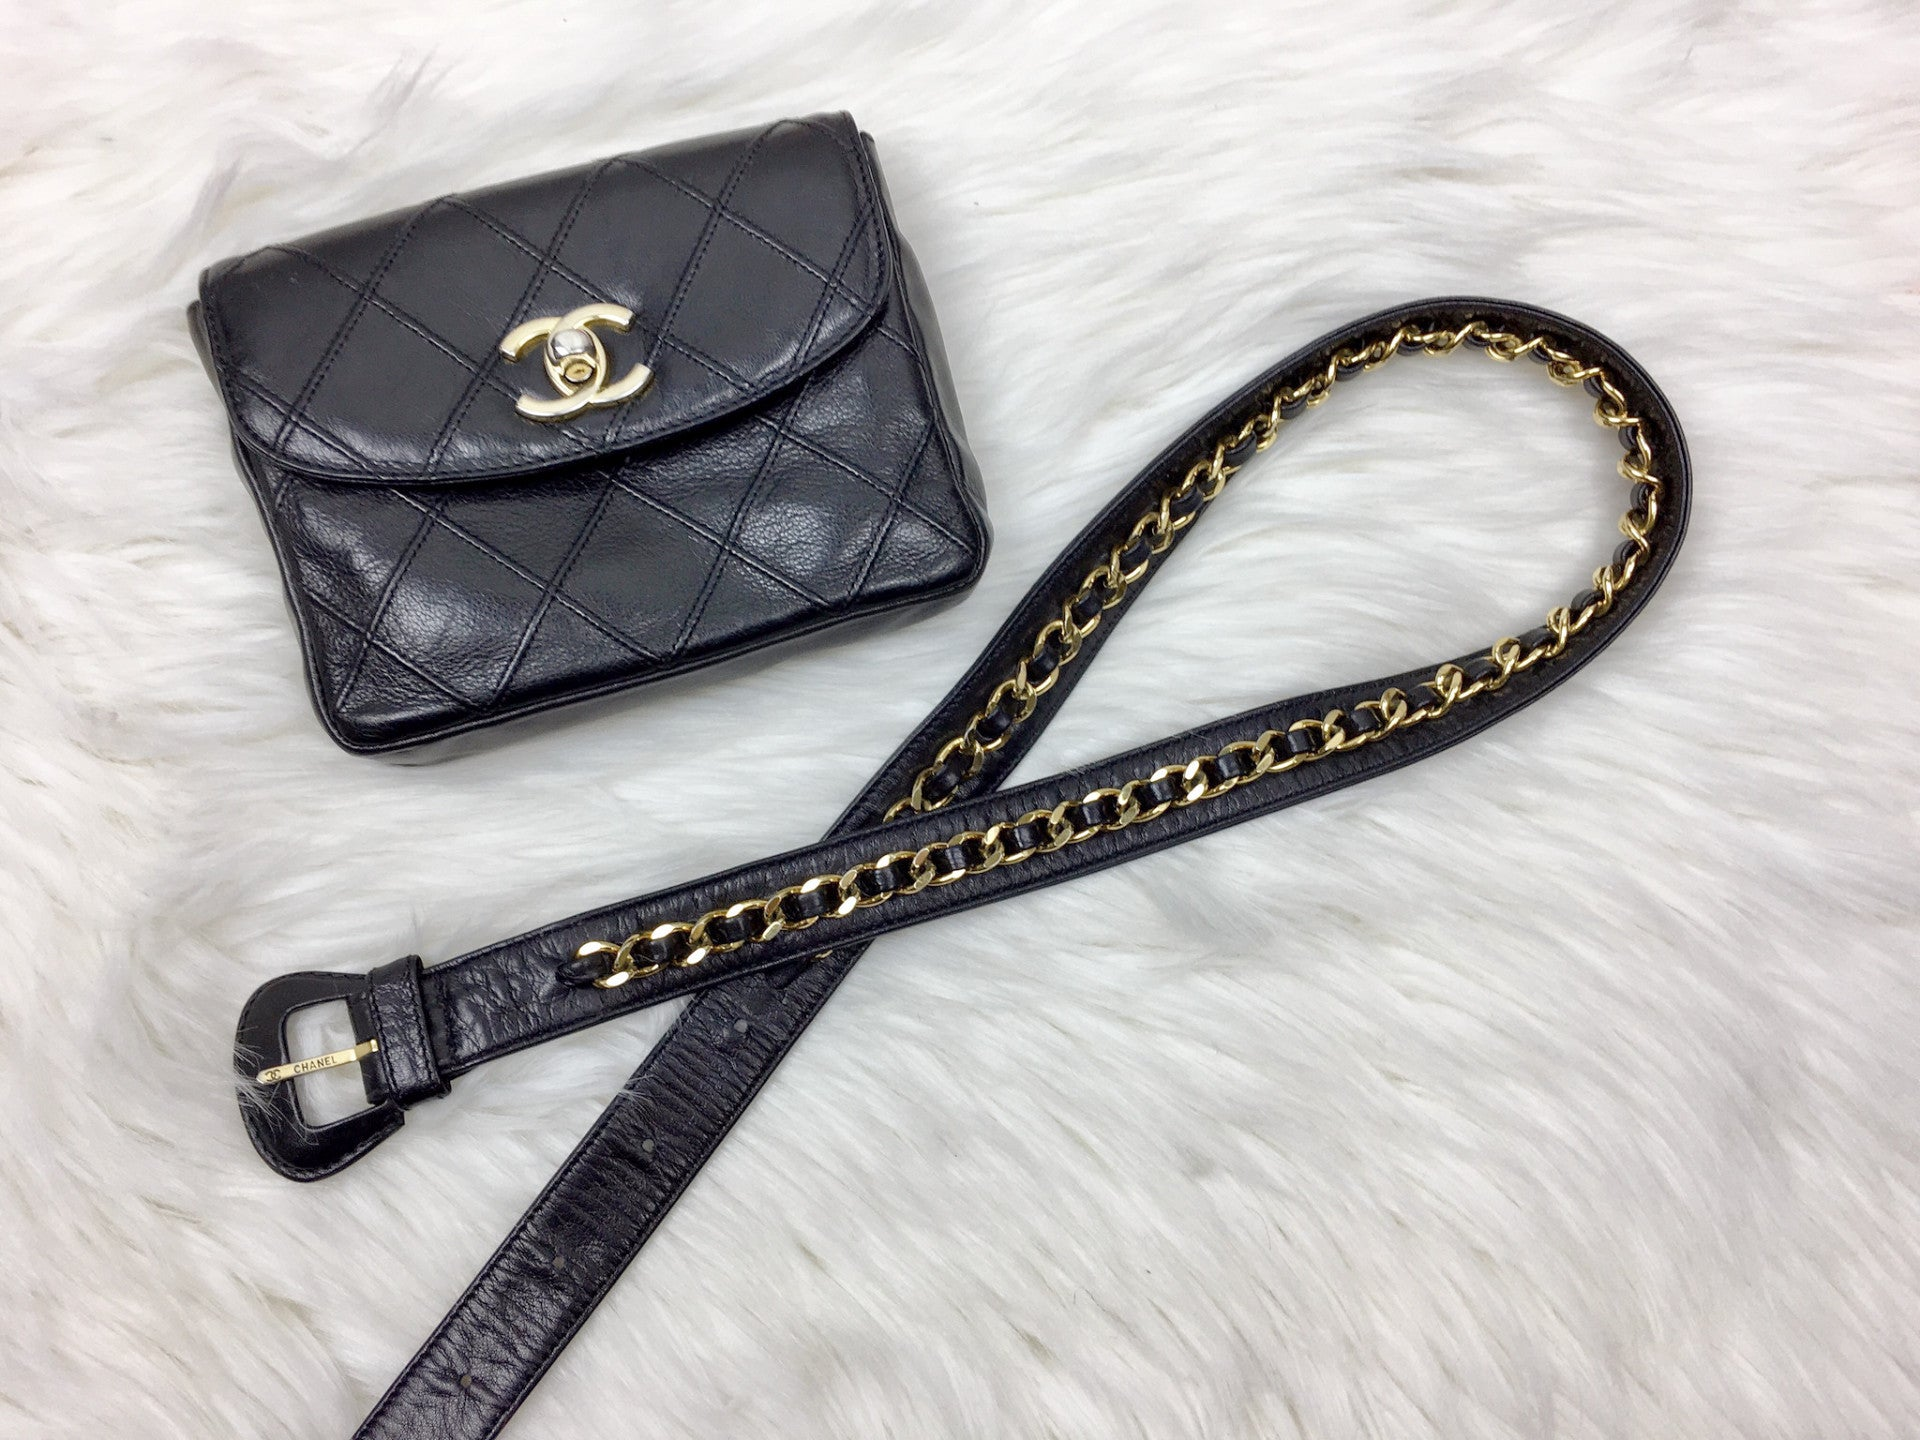 a908a71fc15d2a CHANEL Black Lambskin Quilted Bum Bag (Waist Bag) – Pretty Things ...